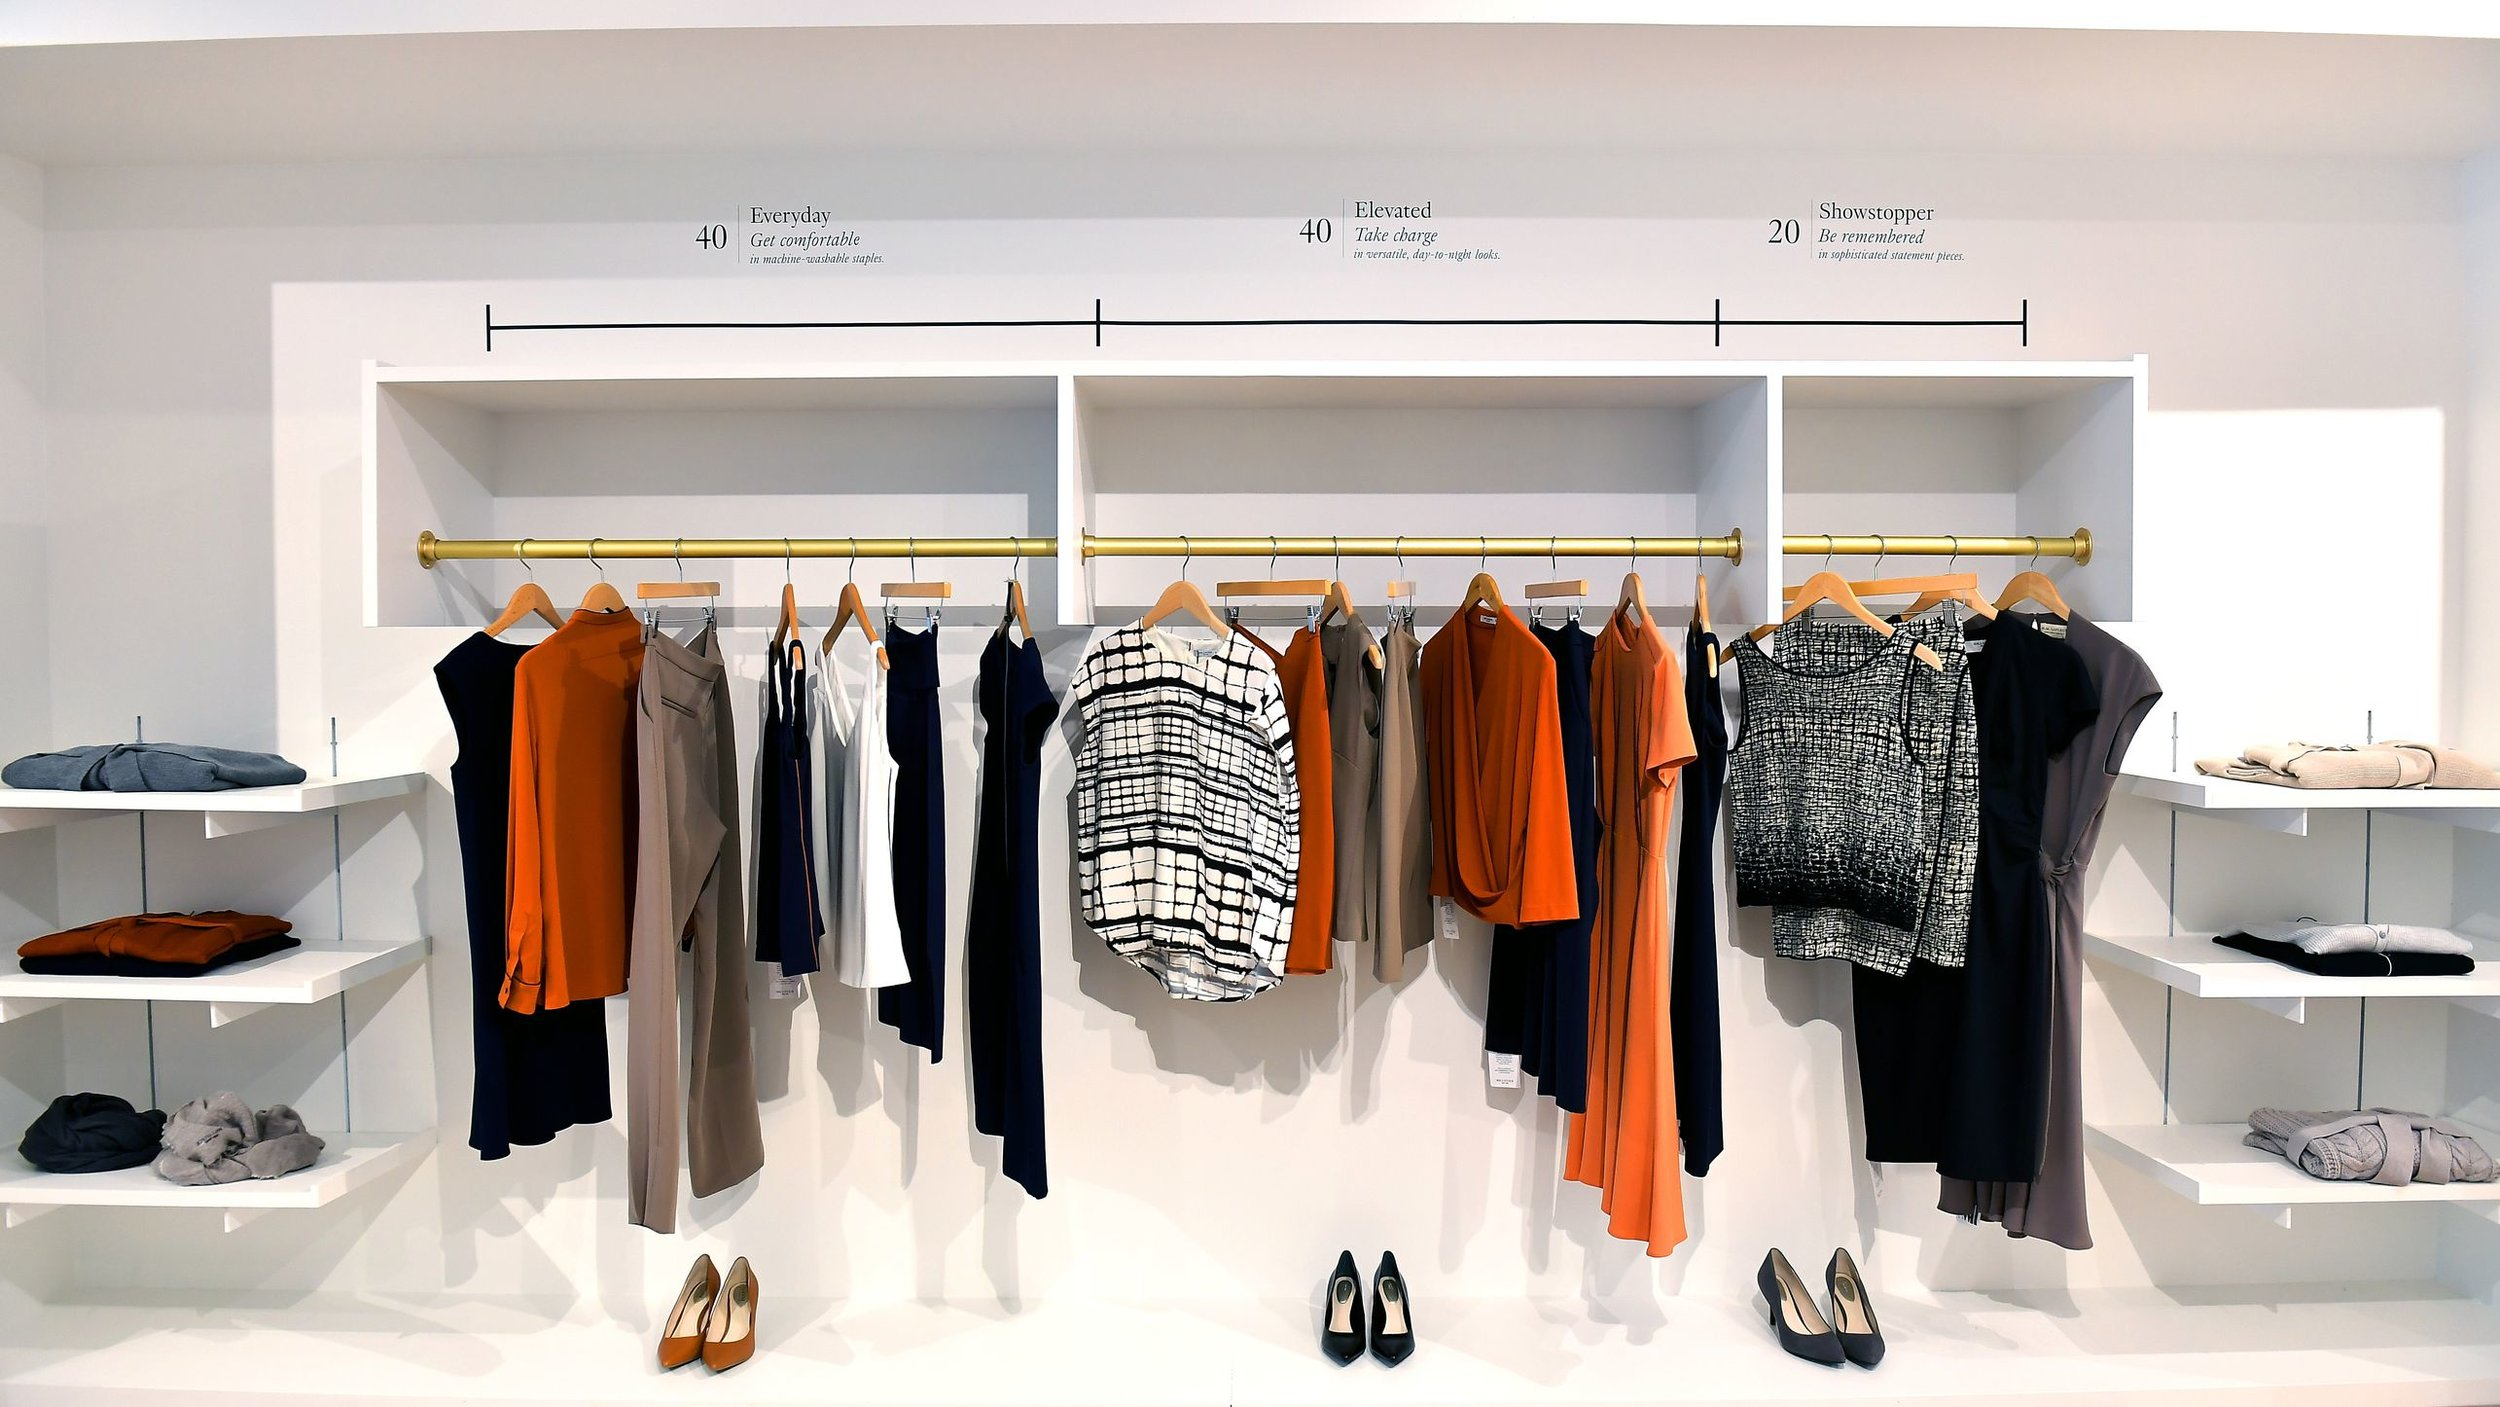 The showroom of MM.Lafleur, which sells professional attire for women. DACA recipient Nejvi Bejko works as a showroom stylist for the apparel company.  Photo: Katherine Frey/The Washington Post via Getty Images